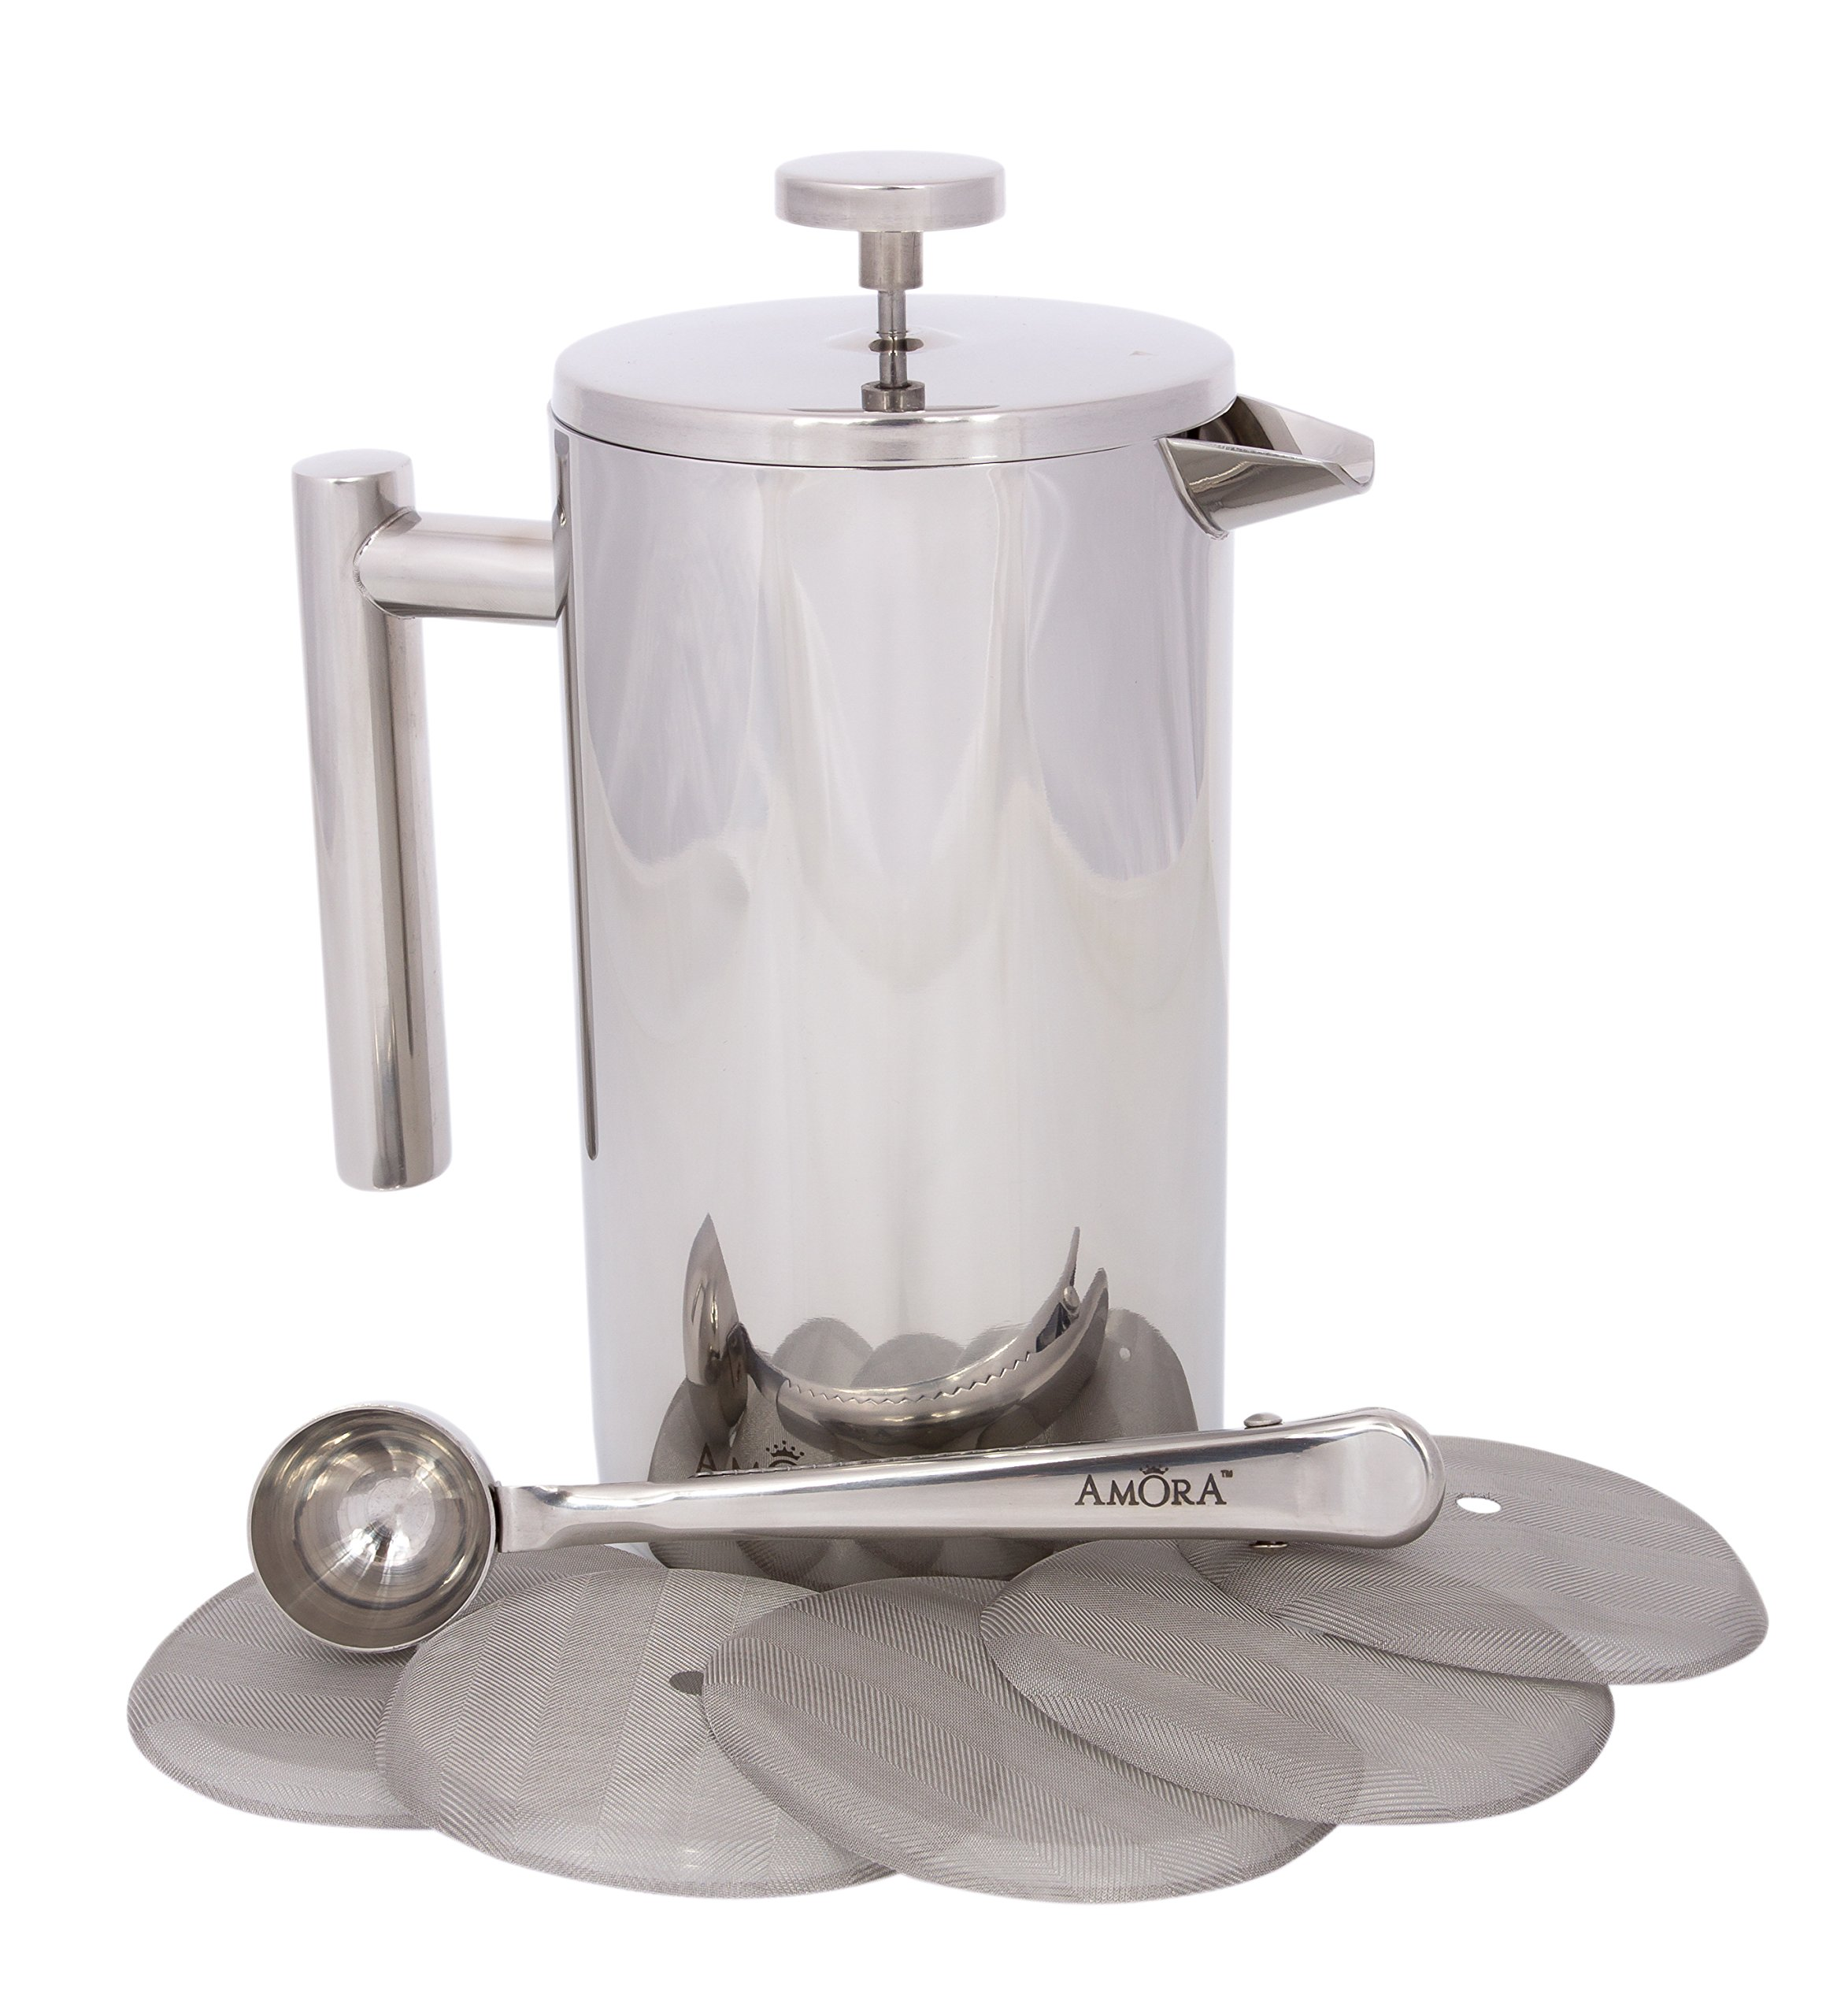 Amora 8-cup Stainless Steel French Press Coffee Maker - FREE Coffee Spoon & 5 Mesh Filters by Amora French Press Coffee Maker